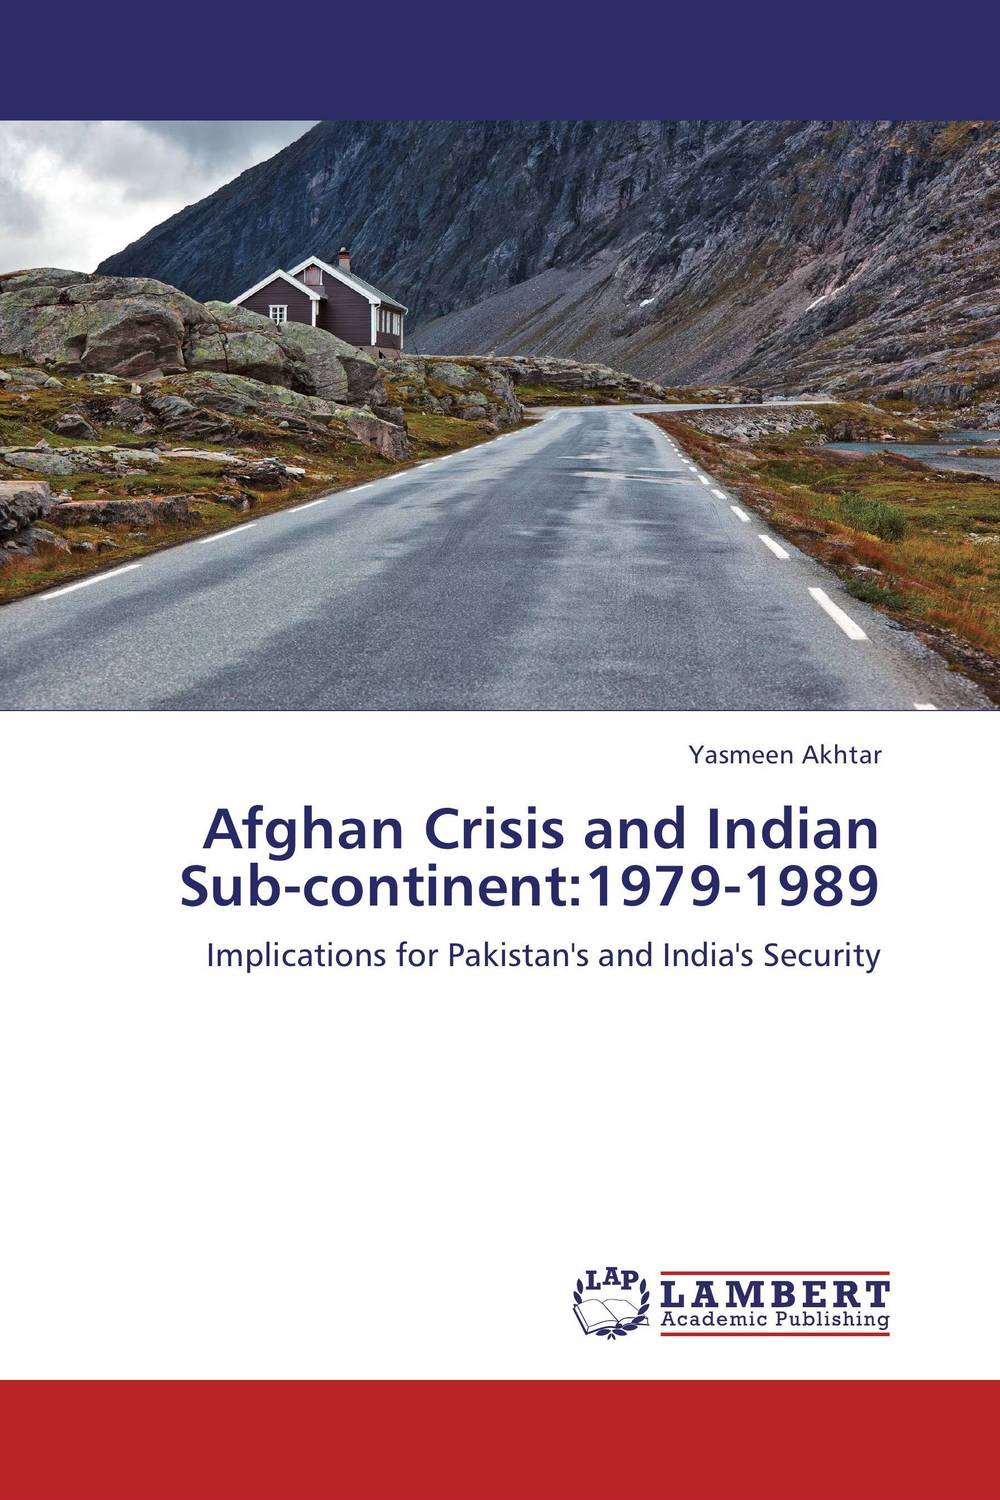 Фото Afghan Crisis and Indian Sub-continent:1979-1989 business and ethics in a country with political socio economic crisis